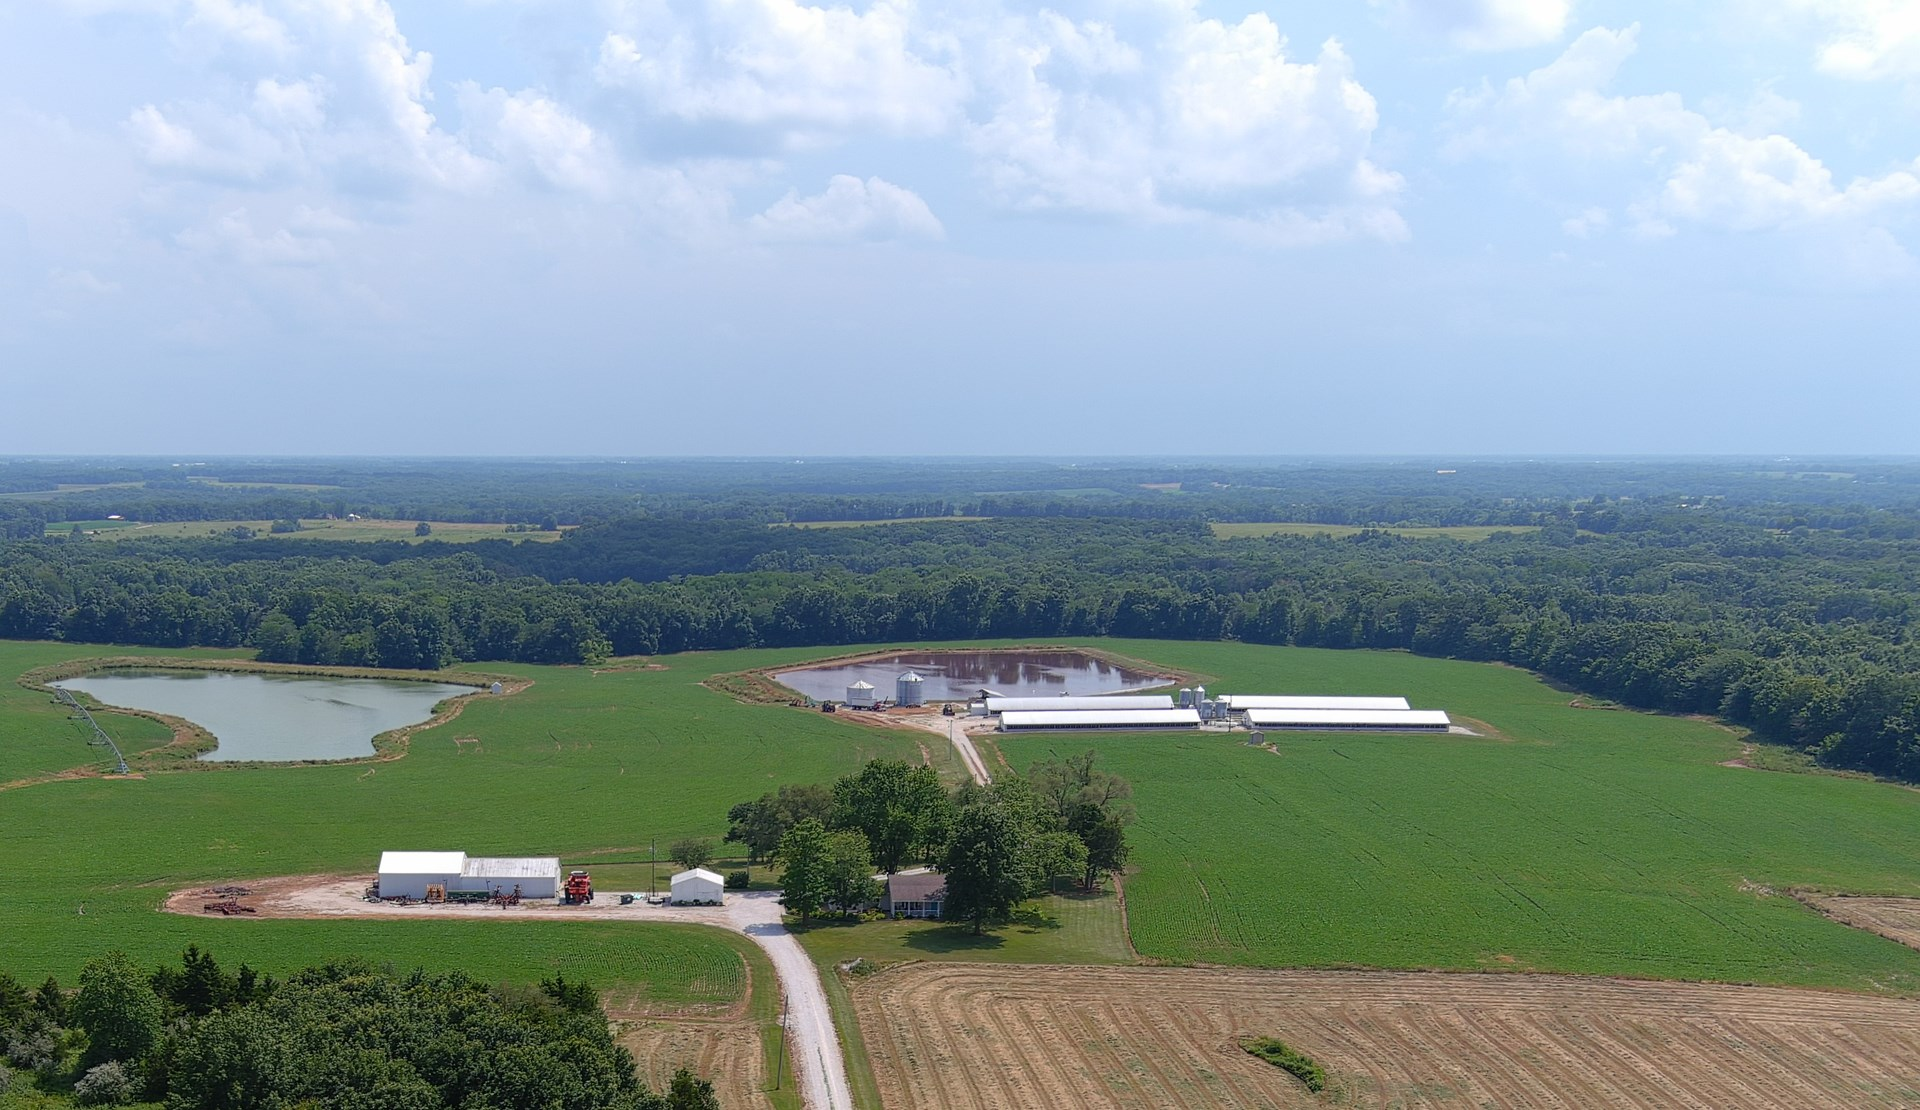 FARMLAND FOR SALE in NORTHEAST MISSOURI WITH BEAUTIFUL VIEWS